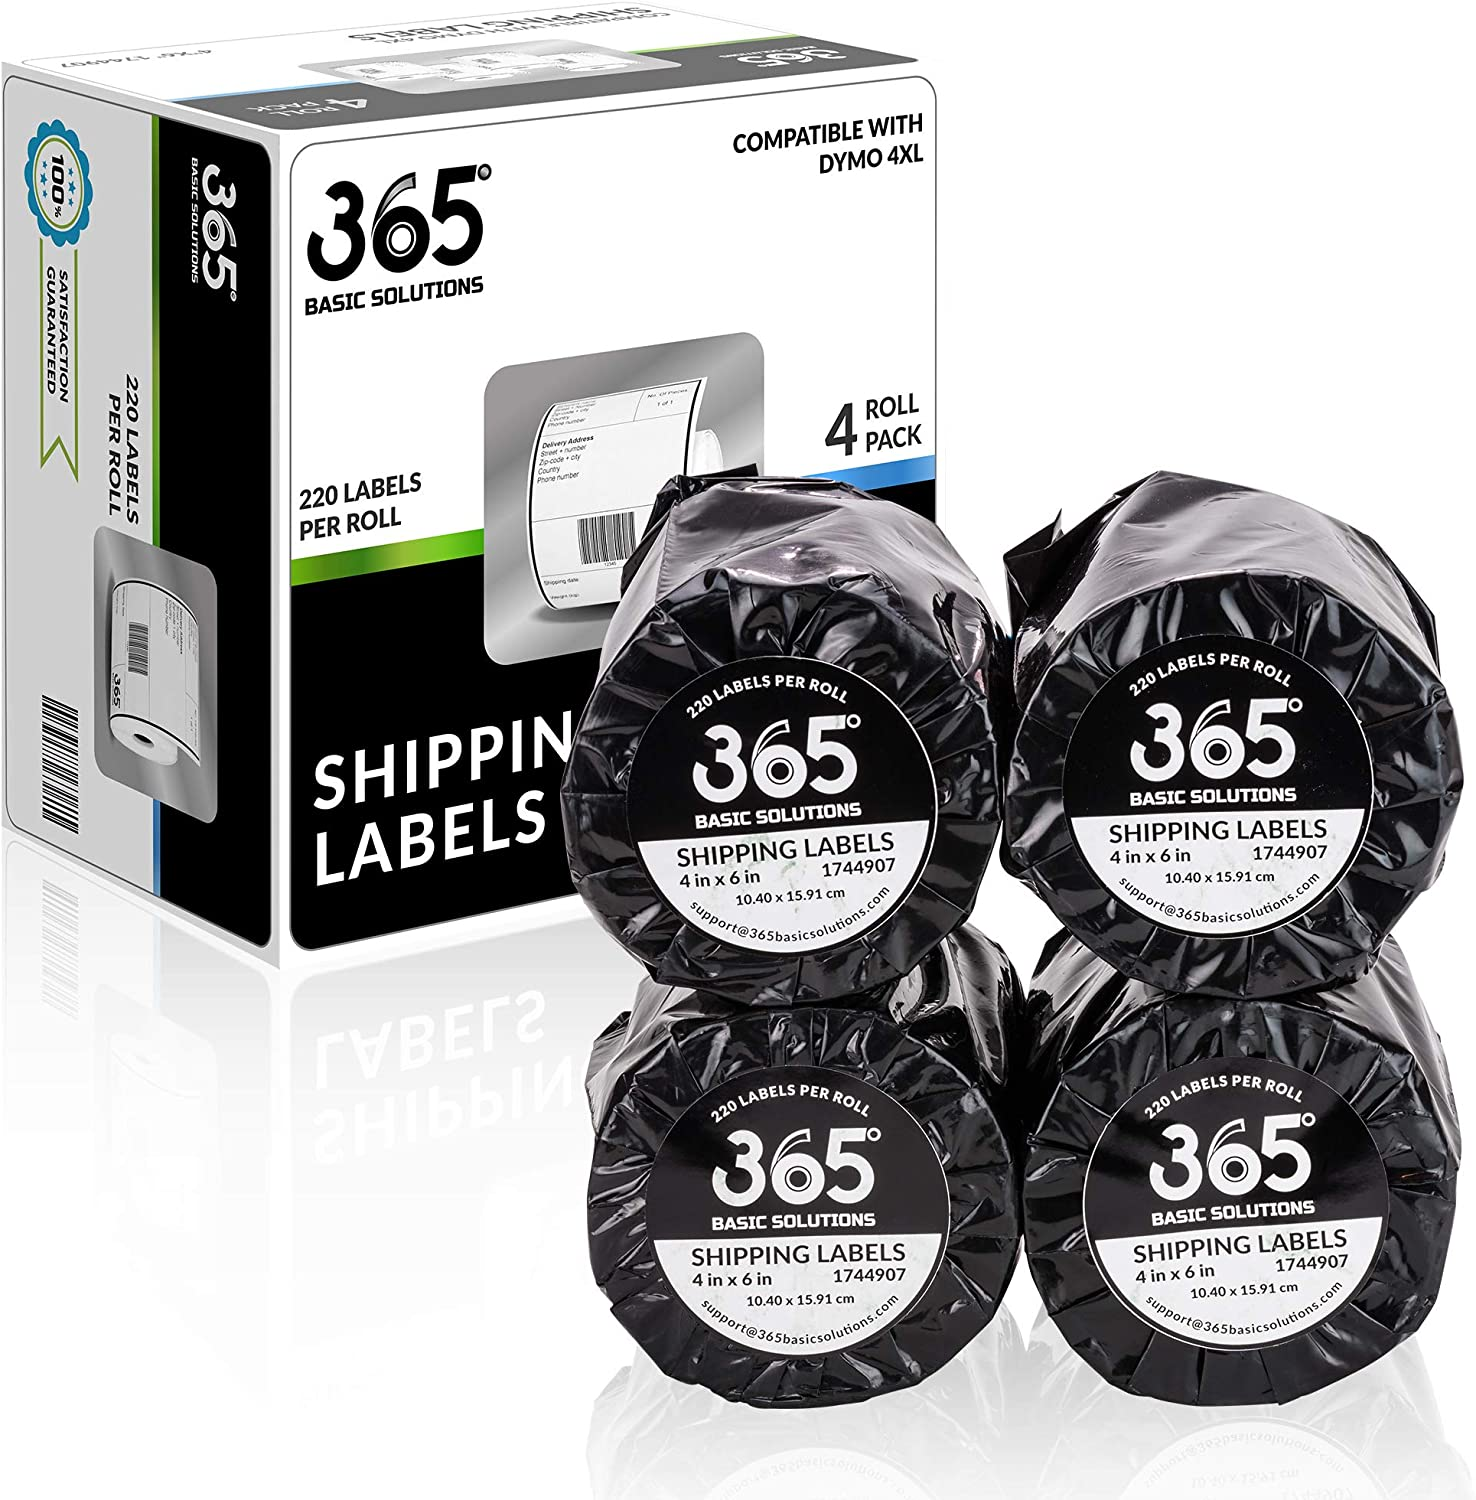 """365 Basic Solutions 1744907 Shipping Labels Dymo Compatible, 4""""x6"""" - 4 x 220 Label Rolls (880 Labels) - Perforated, Strong Adhesive, Smudge Free, Clear Printing Dymo Compatible Thermal Label Paper"""